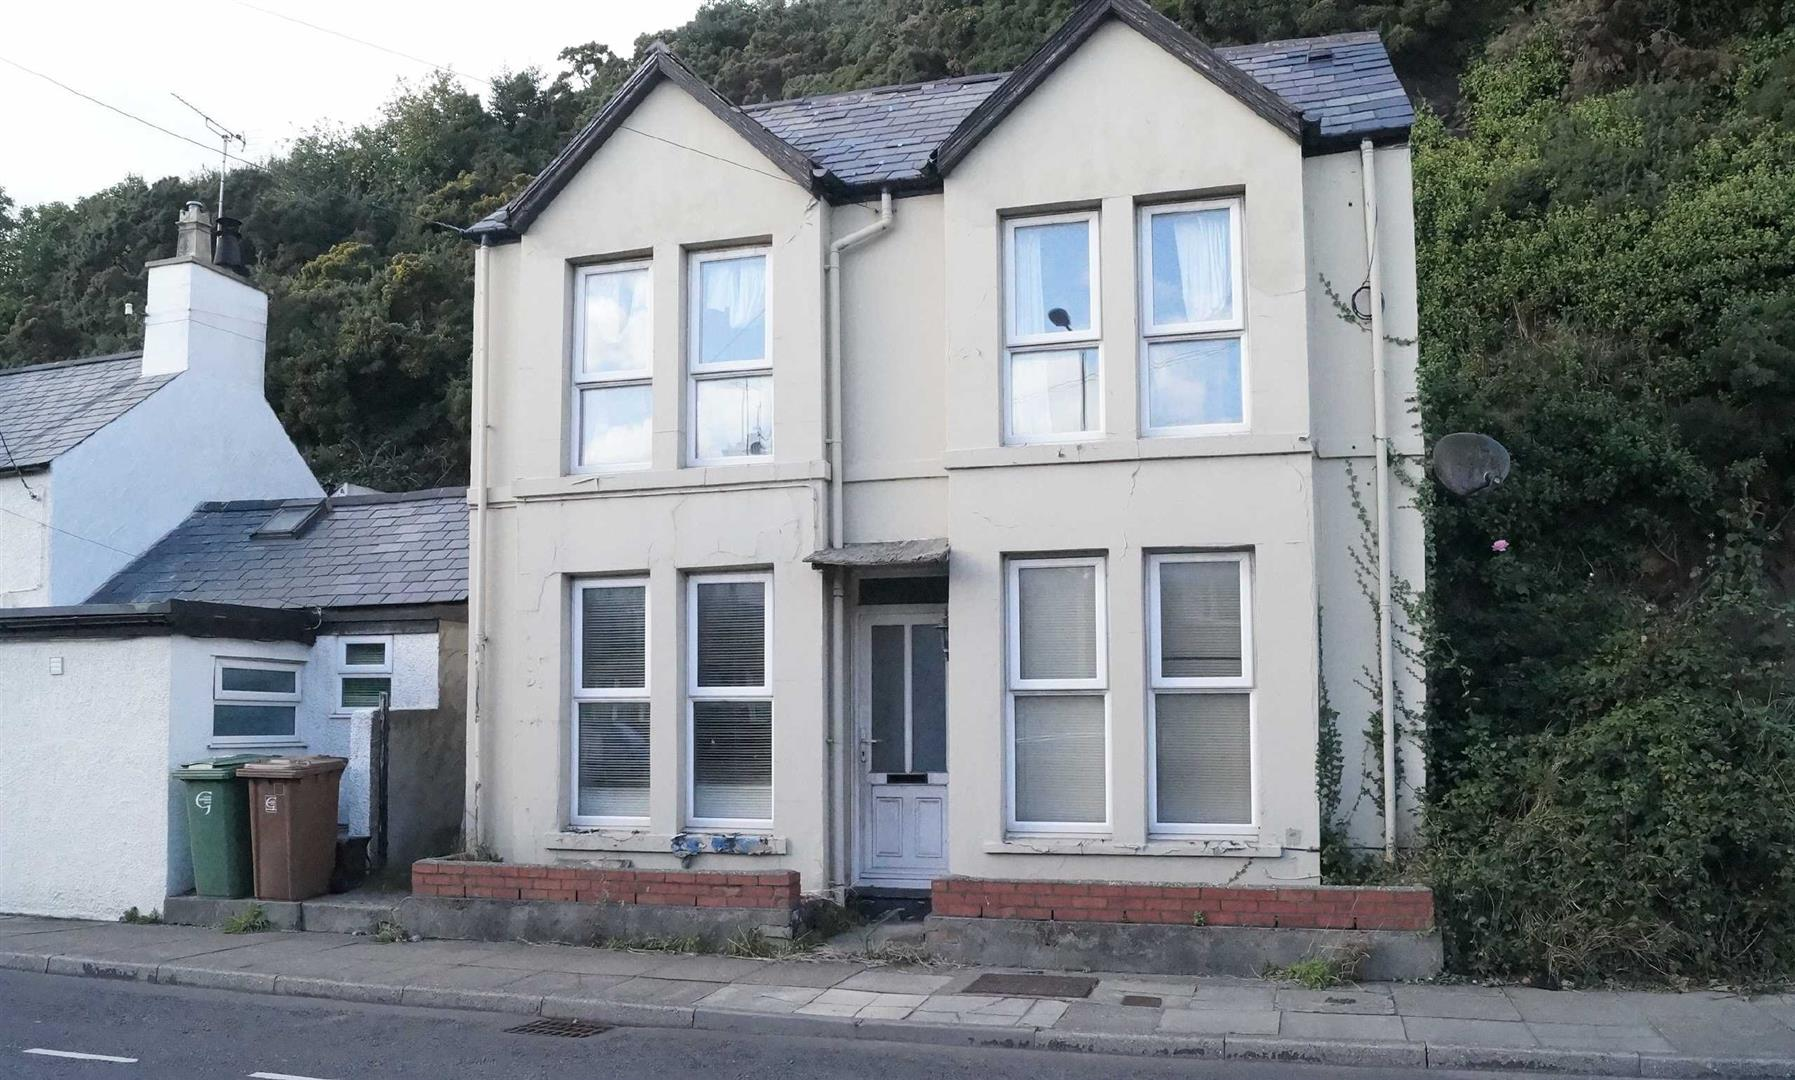 Abererch Road, Pwllheli - £89,000/Open to offers